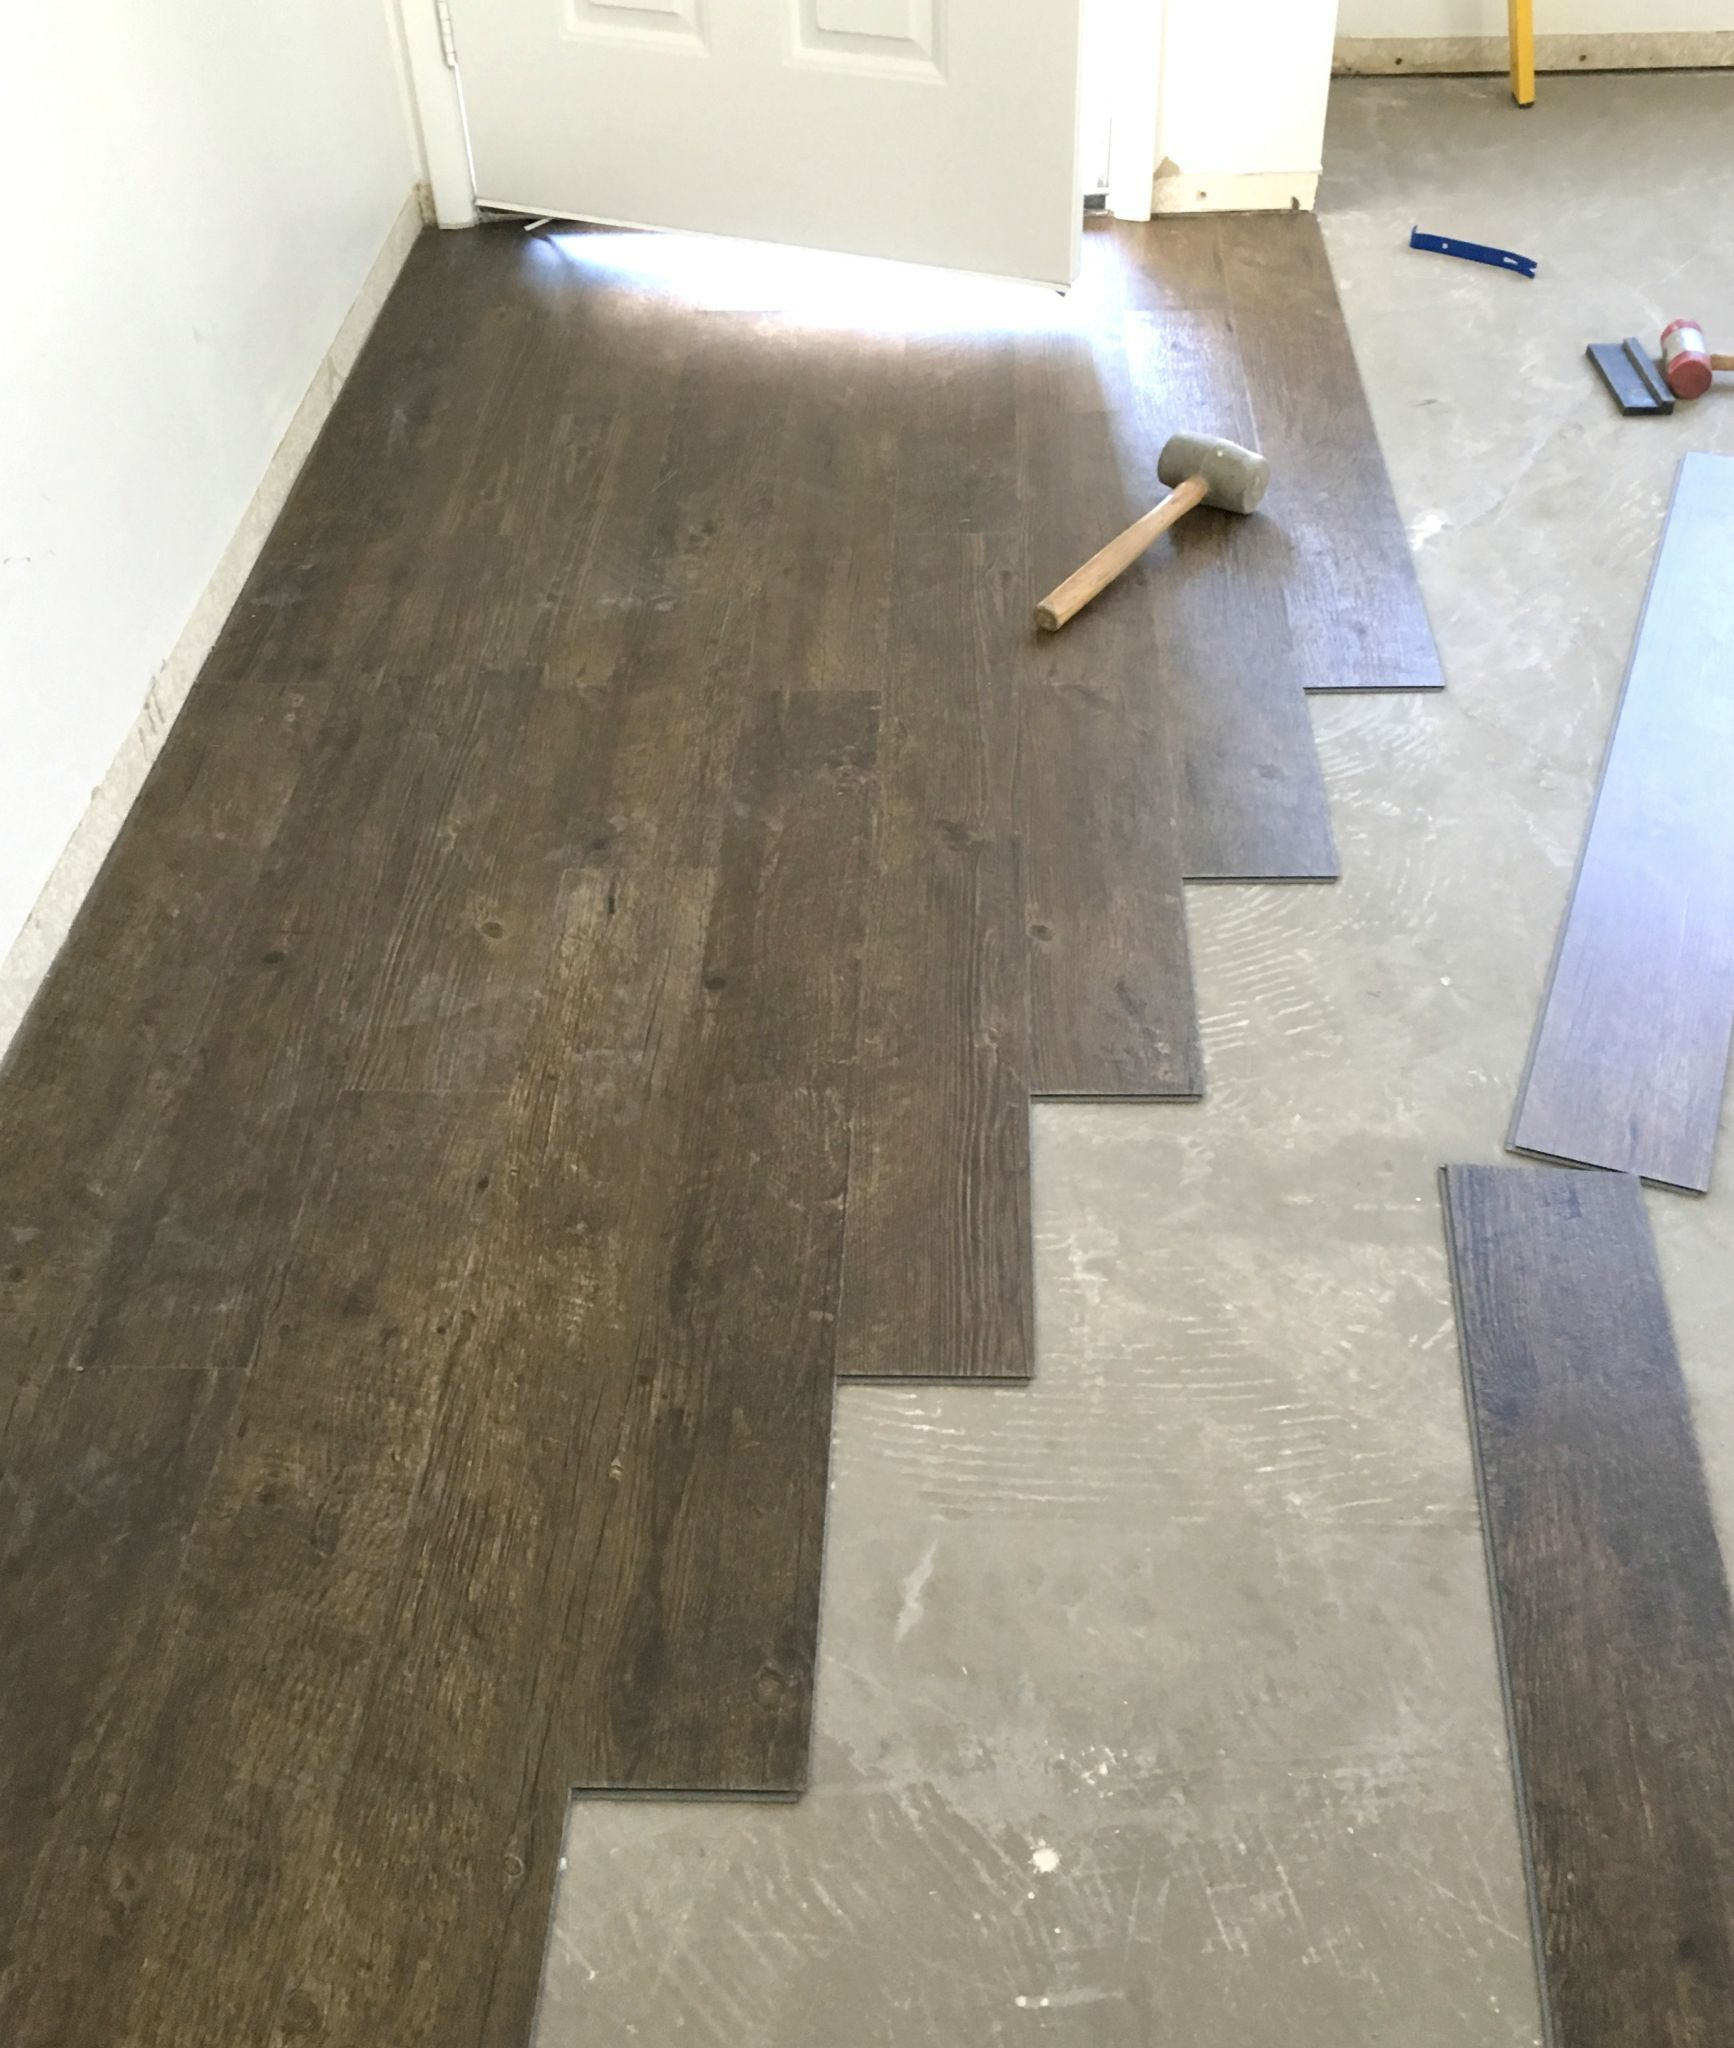 Vinyl plank flooring prep and installation build it with for Pvc wood flooring